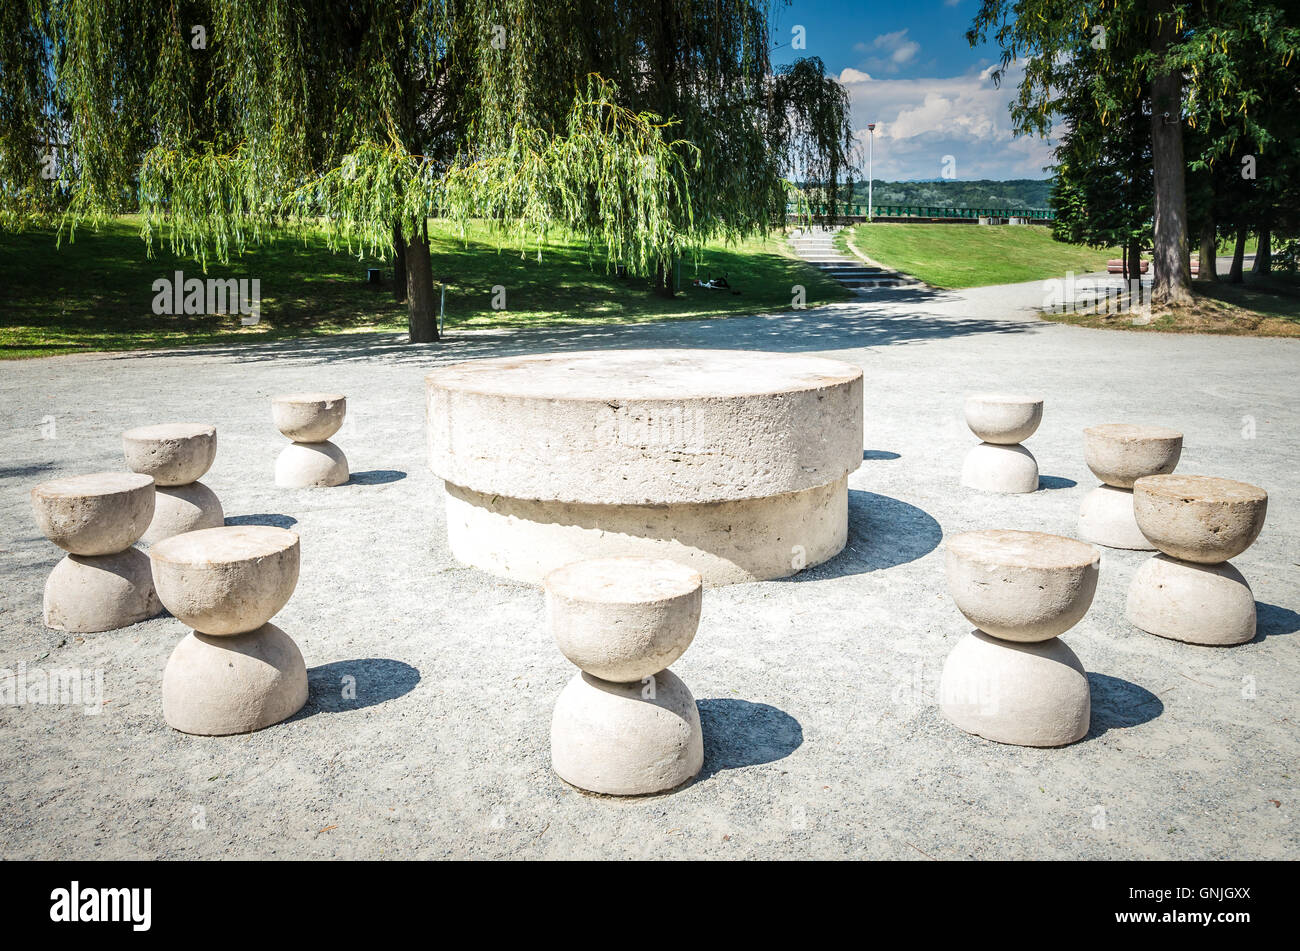 The Table Of Silence. It is a stone sculpture made by Constantin ... for Brancusi Table Of Silence  lp4eri